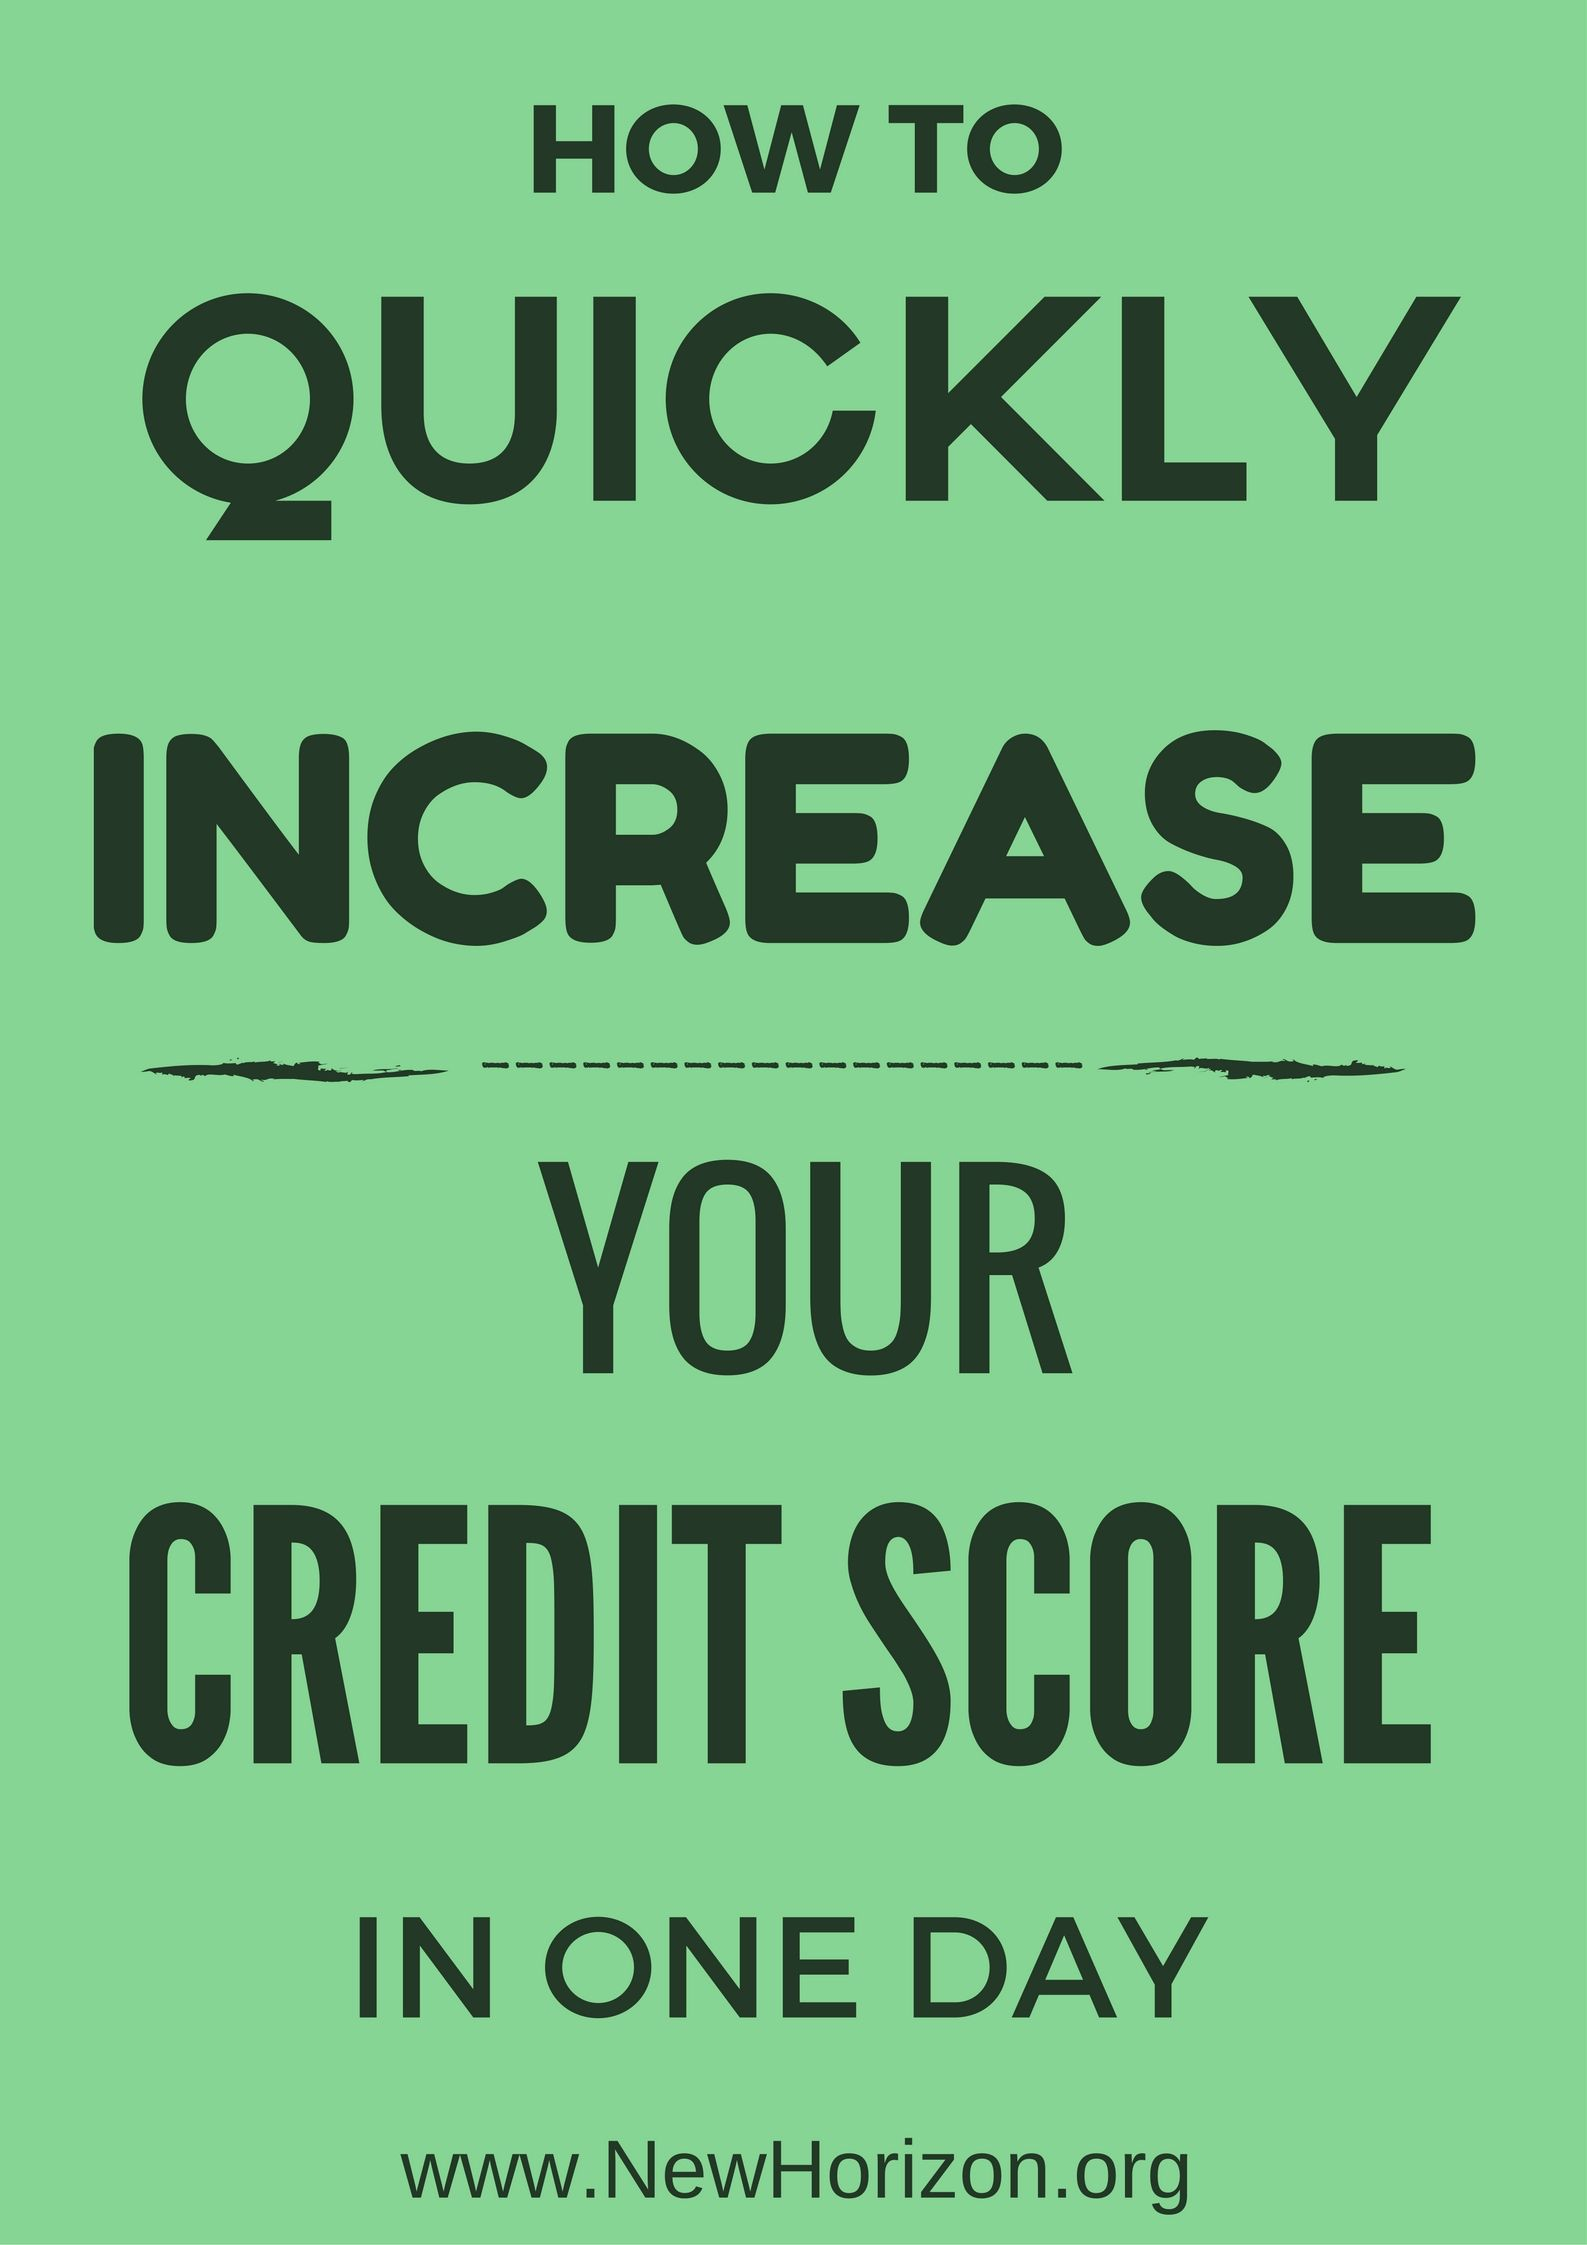 How To Quickly Increase Your Credit Score In One Day!